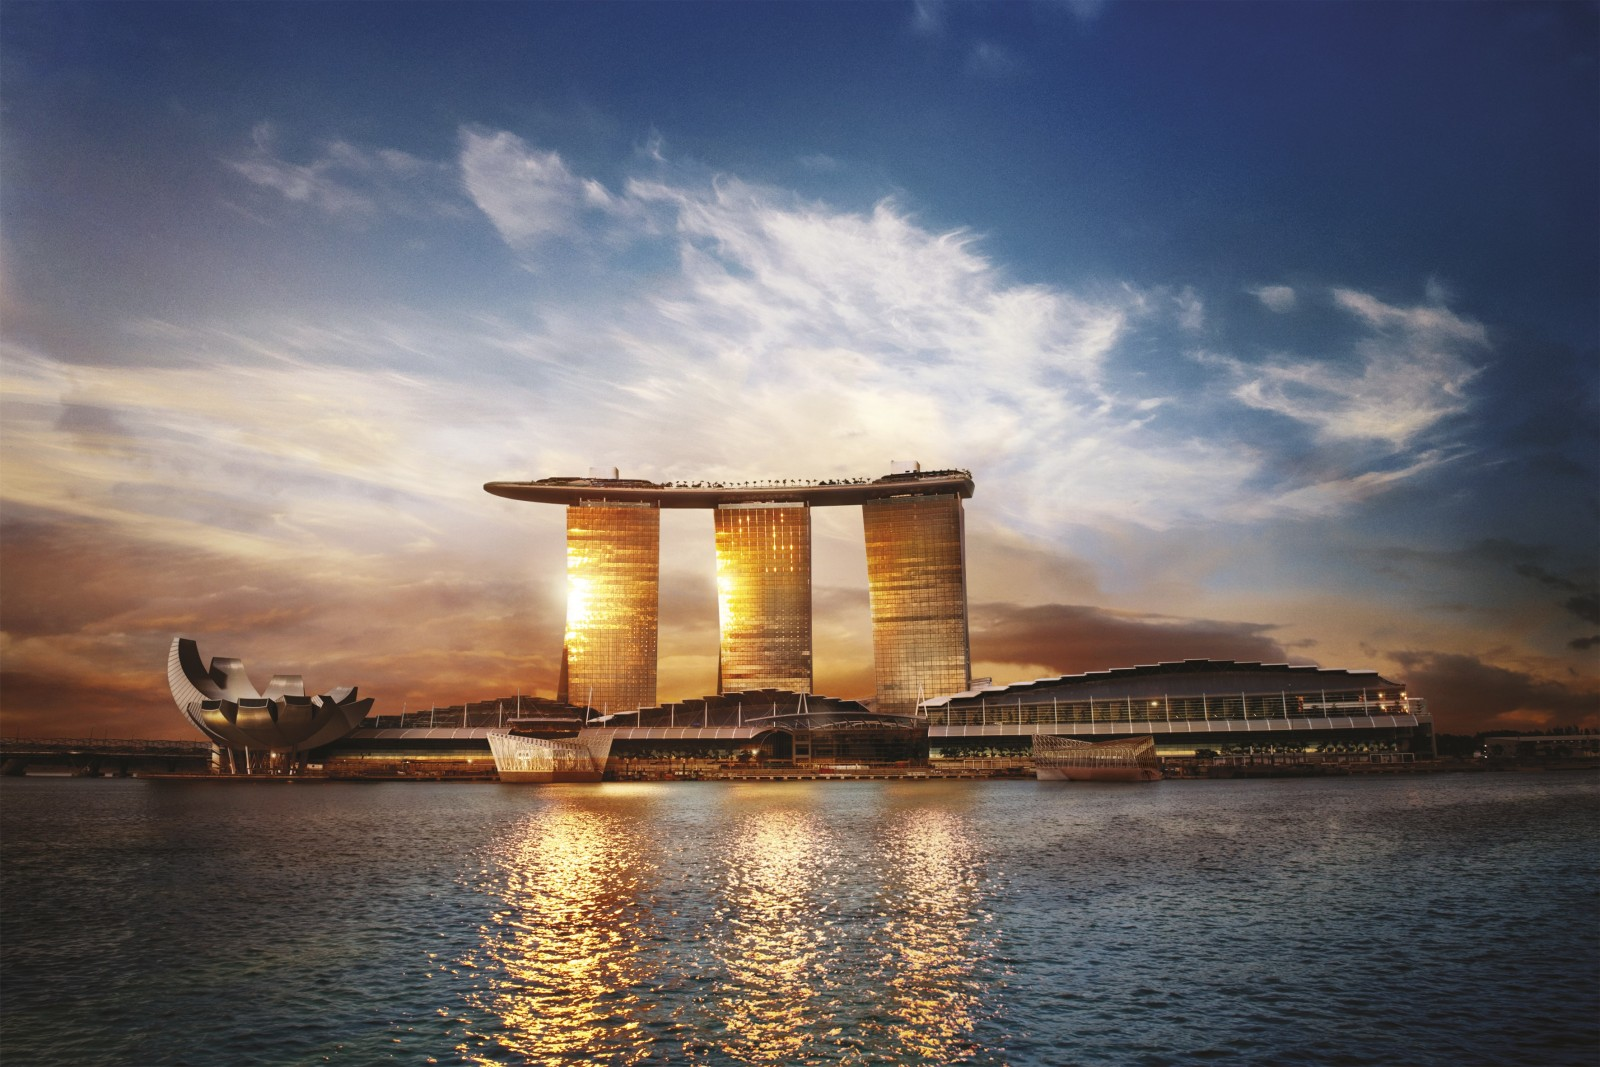 Marina Bay Sands 2 image